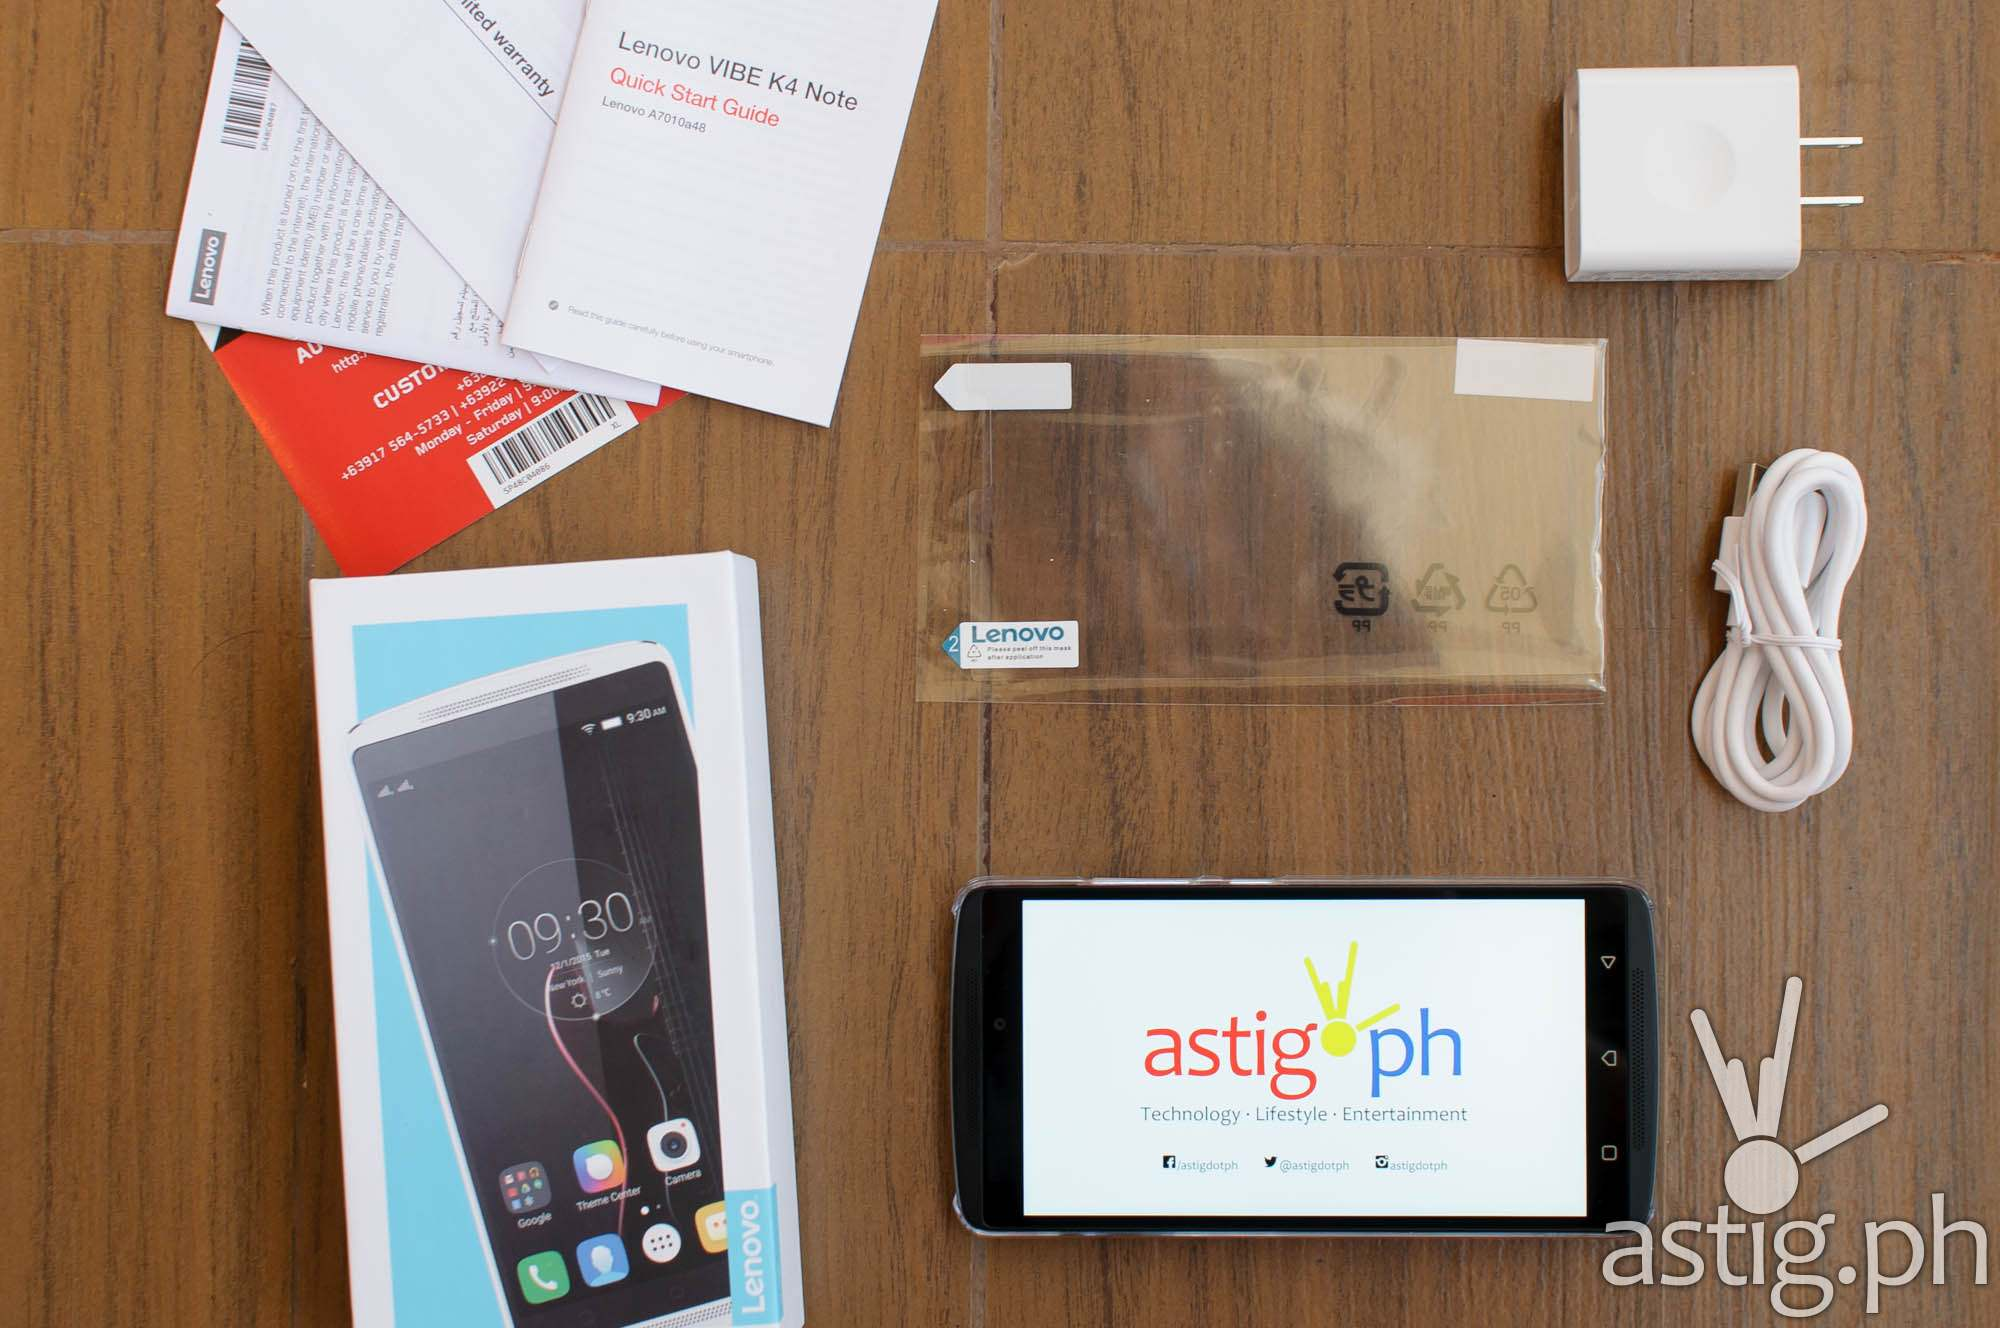 Lenovo VIBE K4 Note preview unboxing video